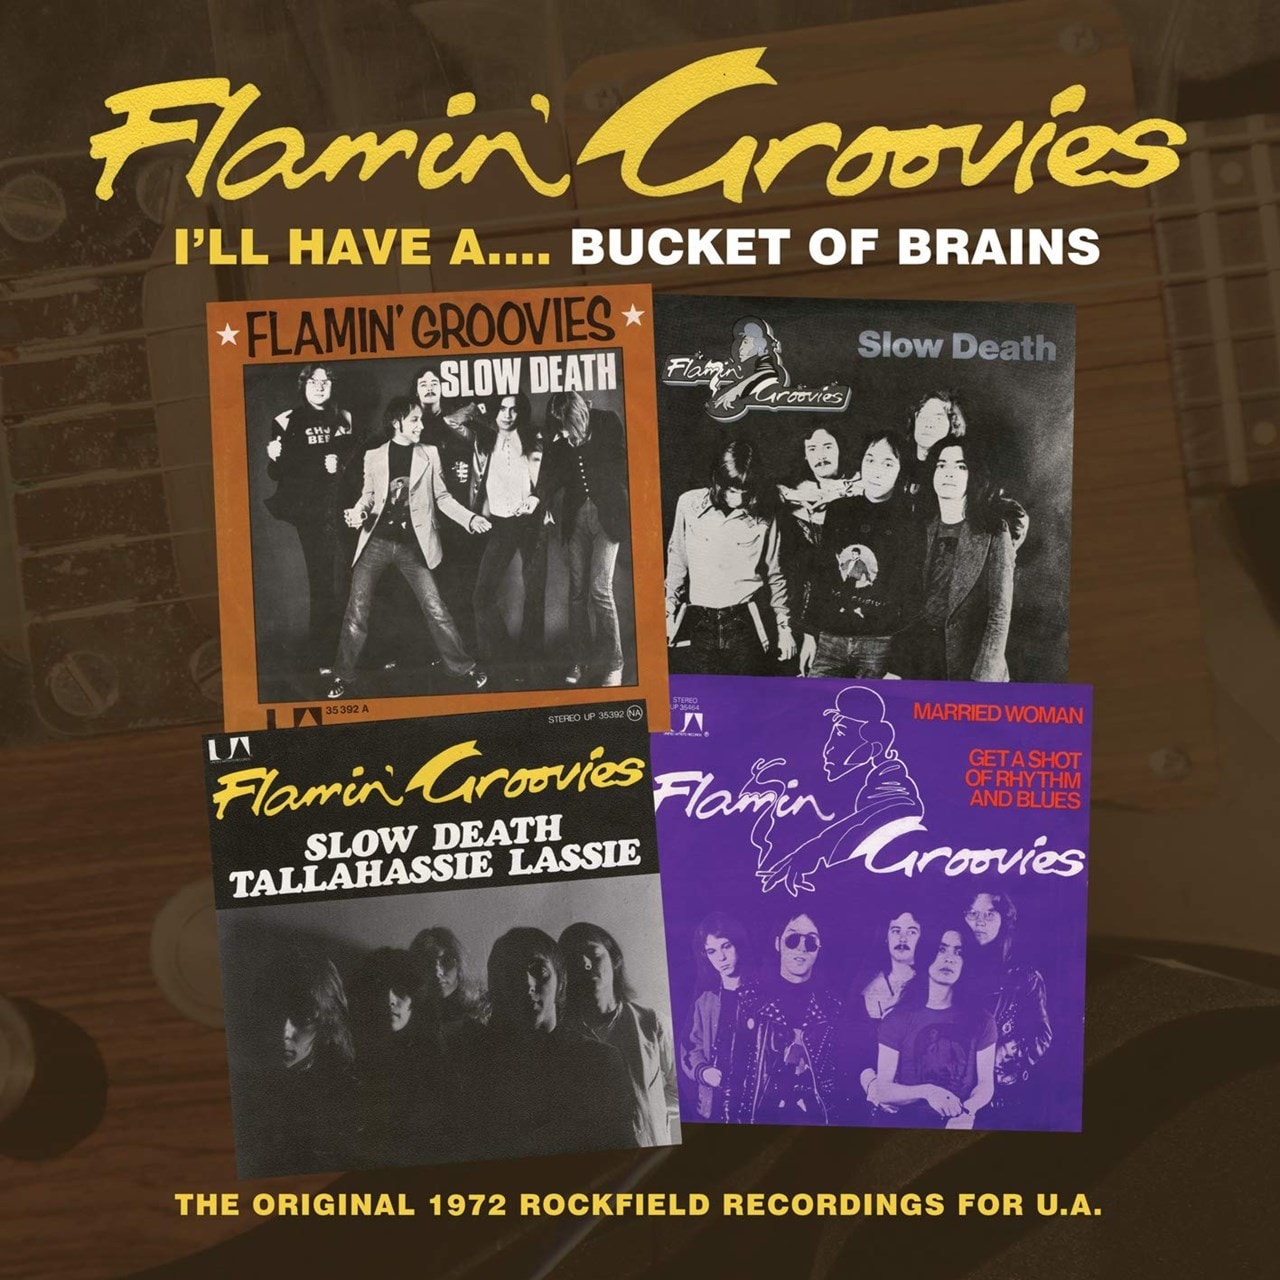 I'll Have A... Bucket of Brains: The Original 1972 Rockfield Recordings for U.A. - 1